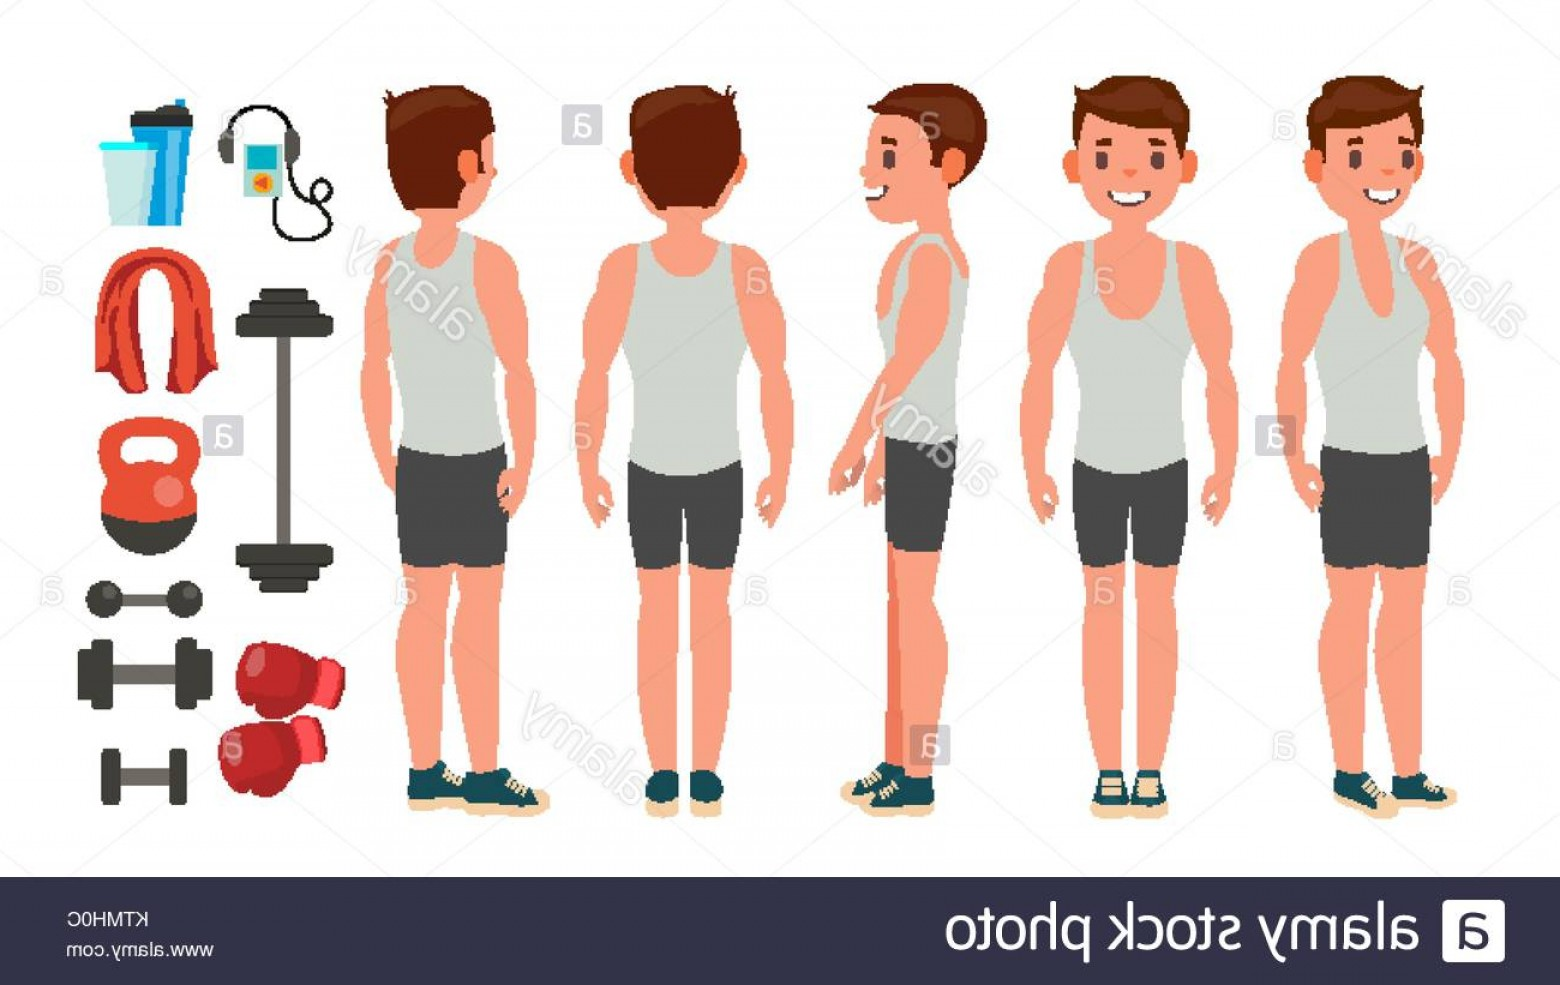 Man Vector Exercise: Stock Photo Fitness Man Vector Different Poses Lifestyle Design Exercise And Athlete